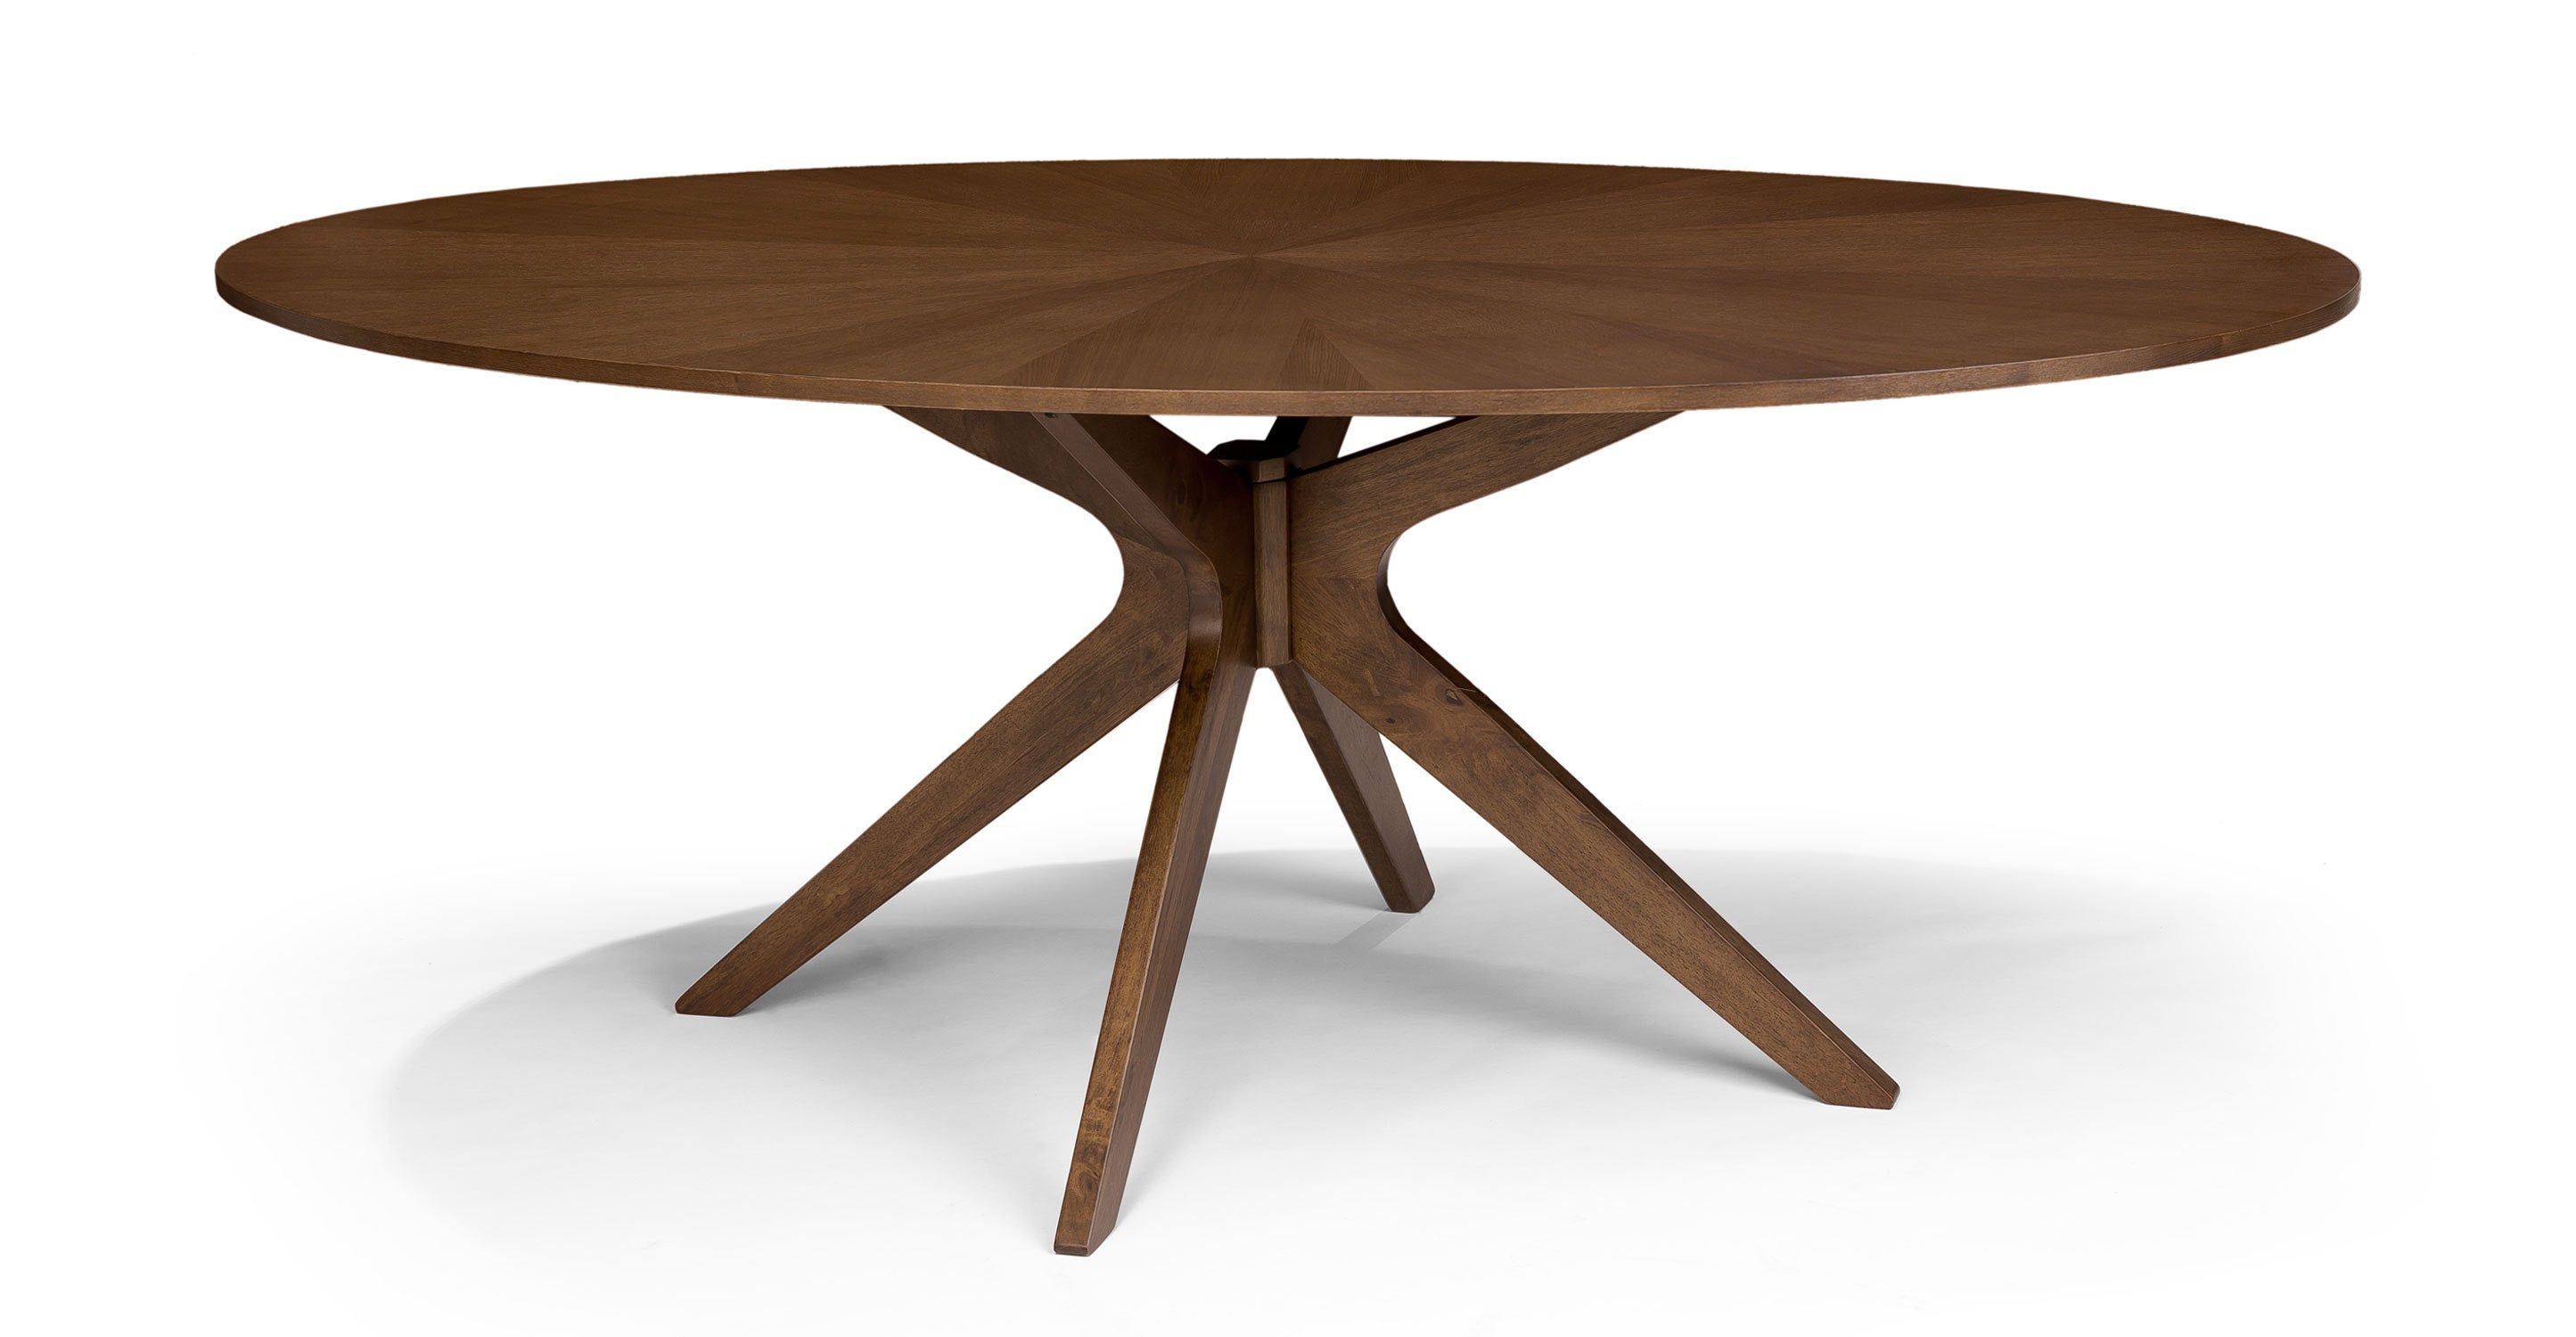 Best ideas about Oval Dining Table . Save or Pin Conan Oval Dining Table Now.